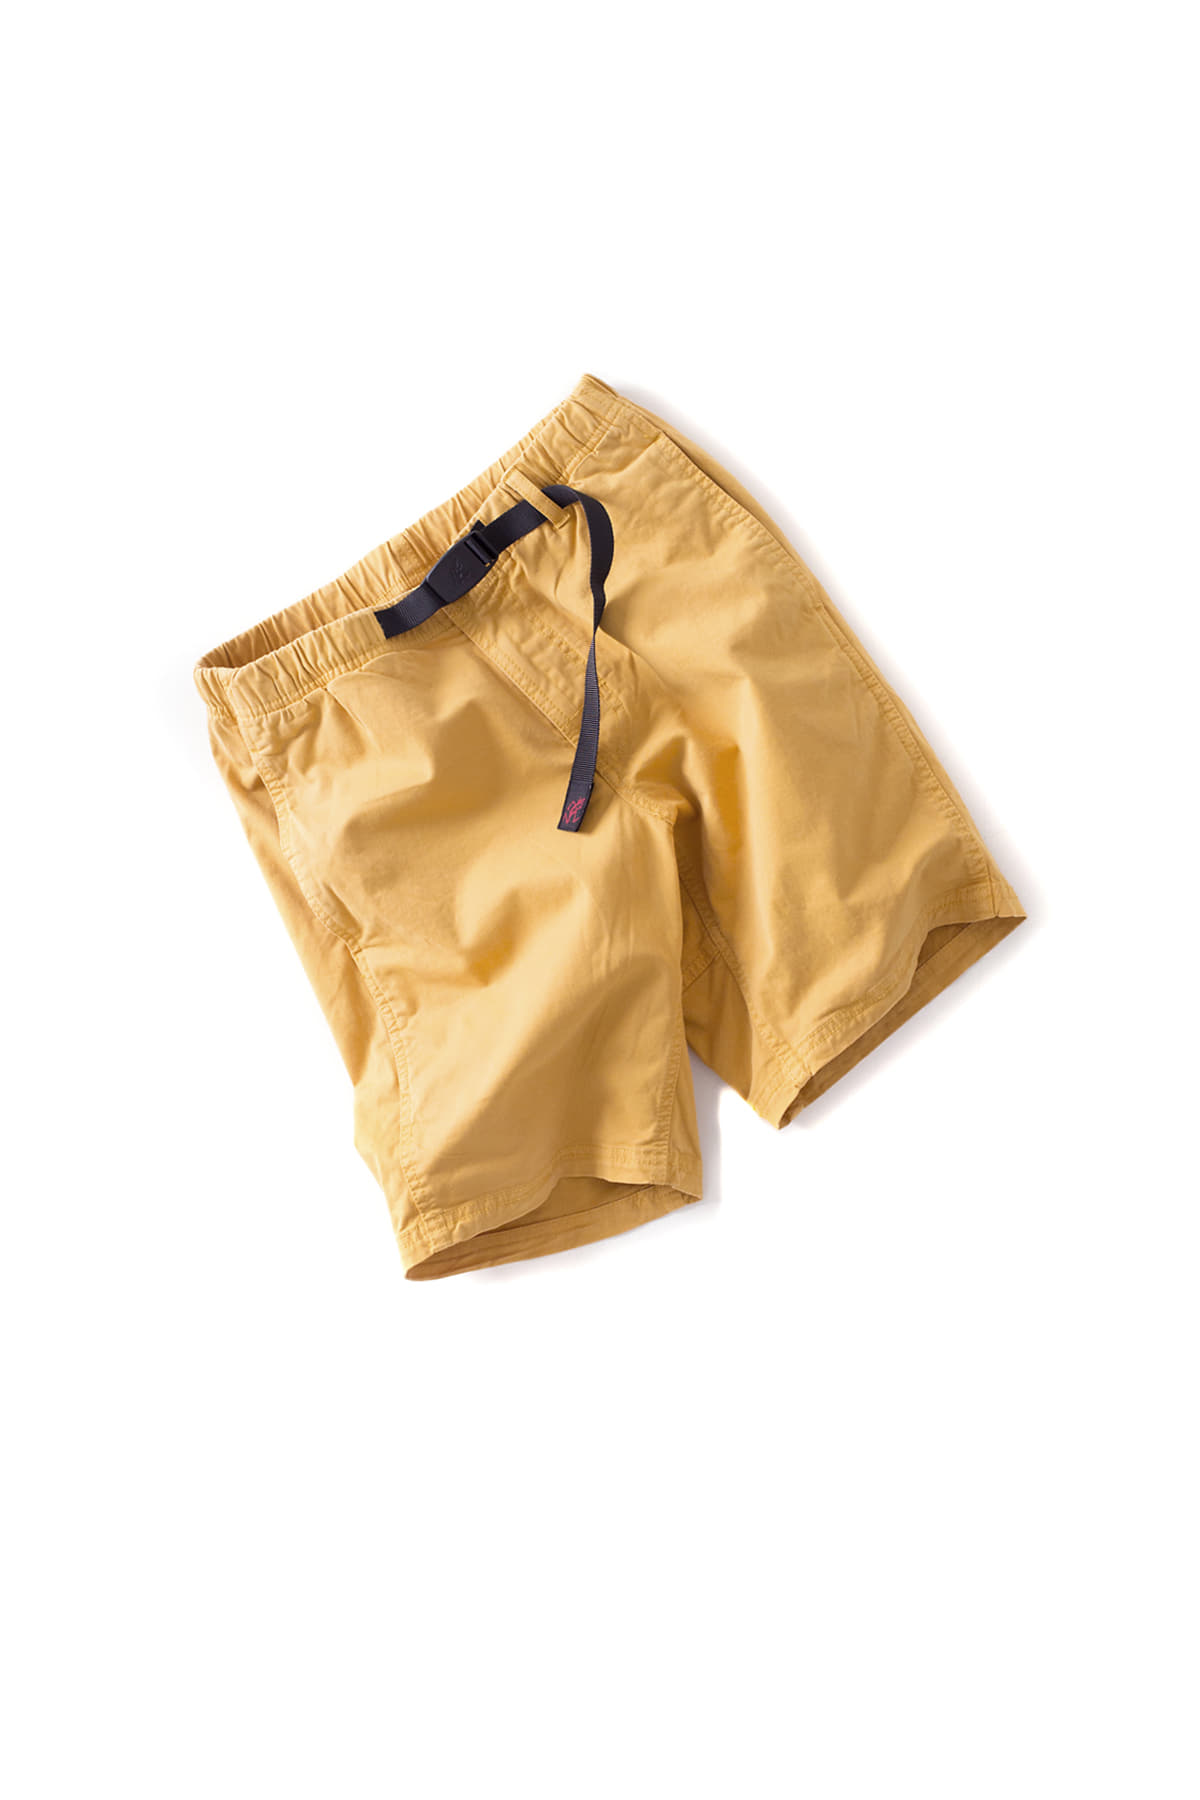 Gramicci : NN-Shorts (Gold)